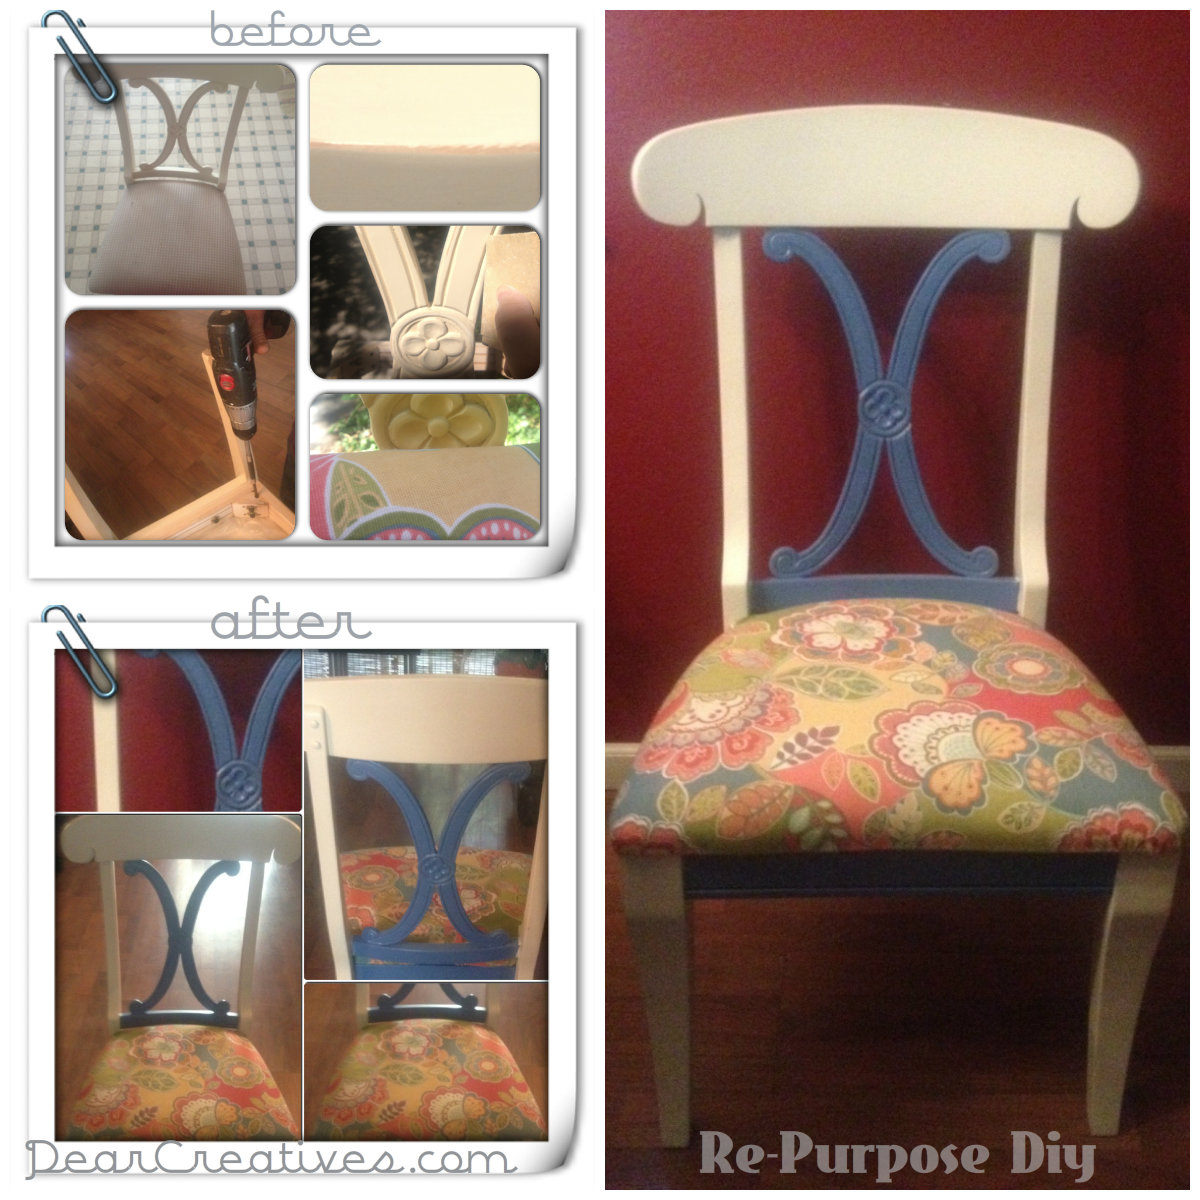 Re-Purposed Pottery Barn Chairs – Part 2 + #Diy Tutorial